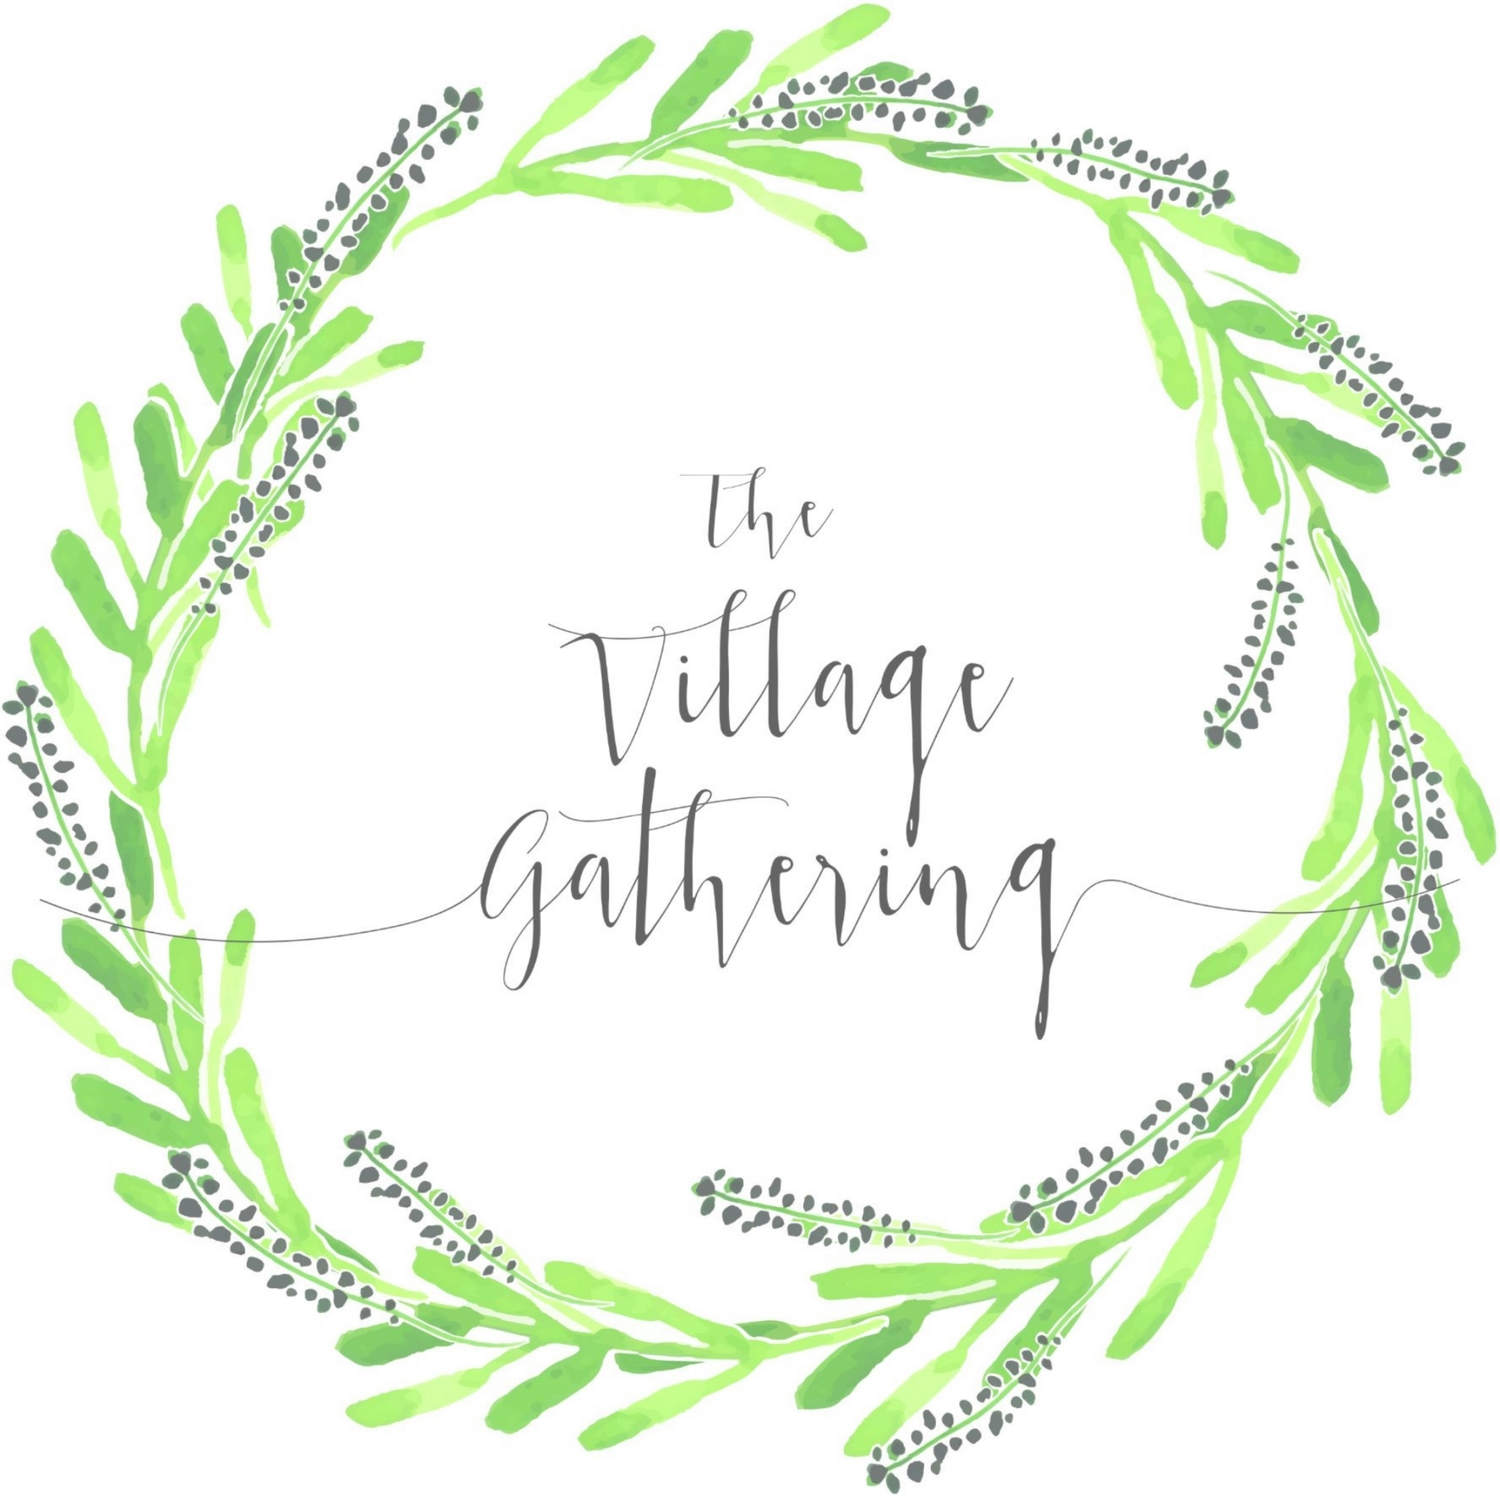 the village gathering